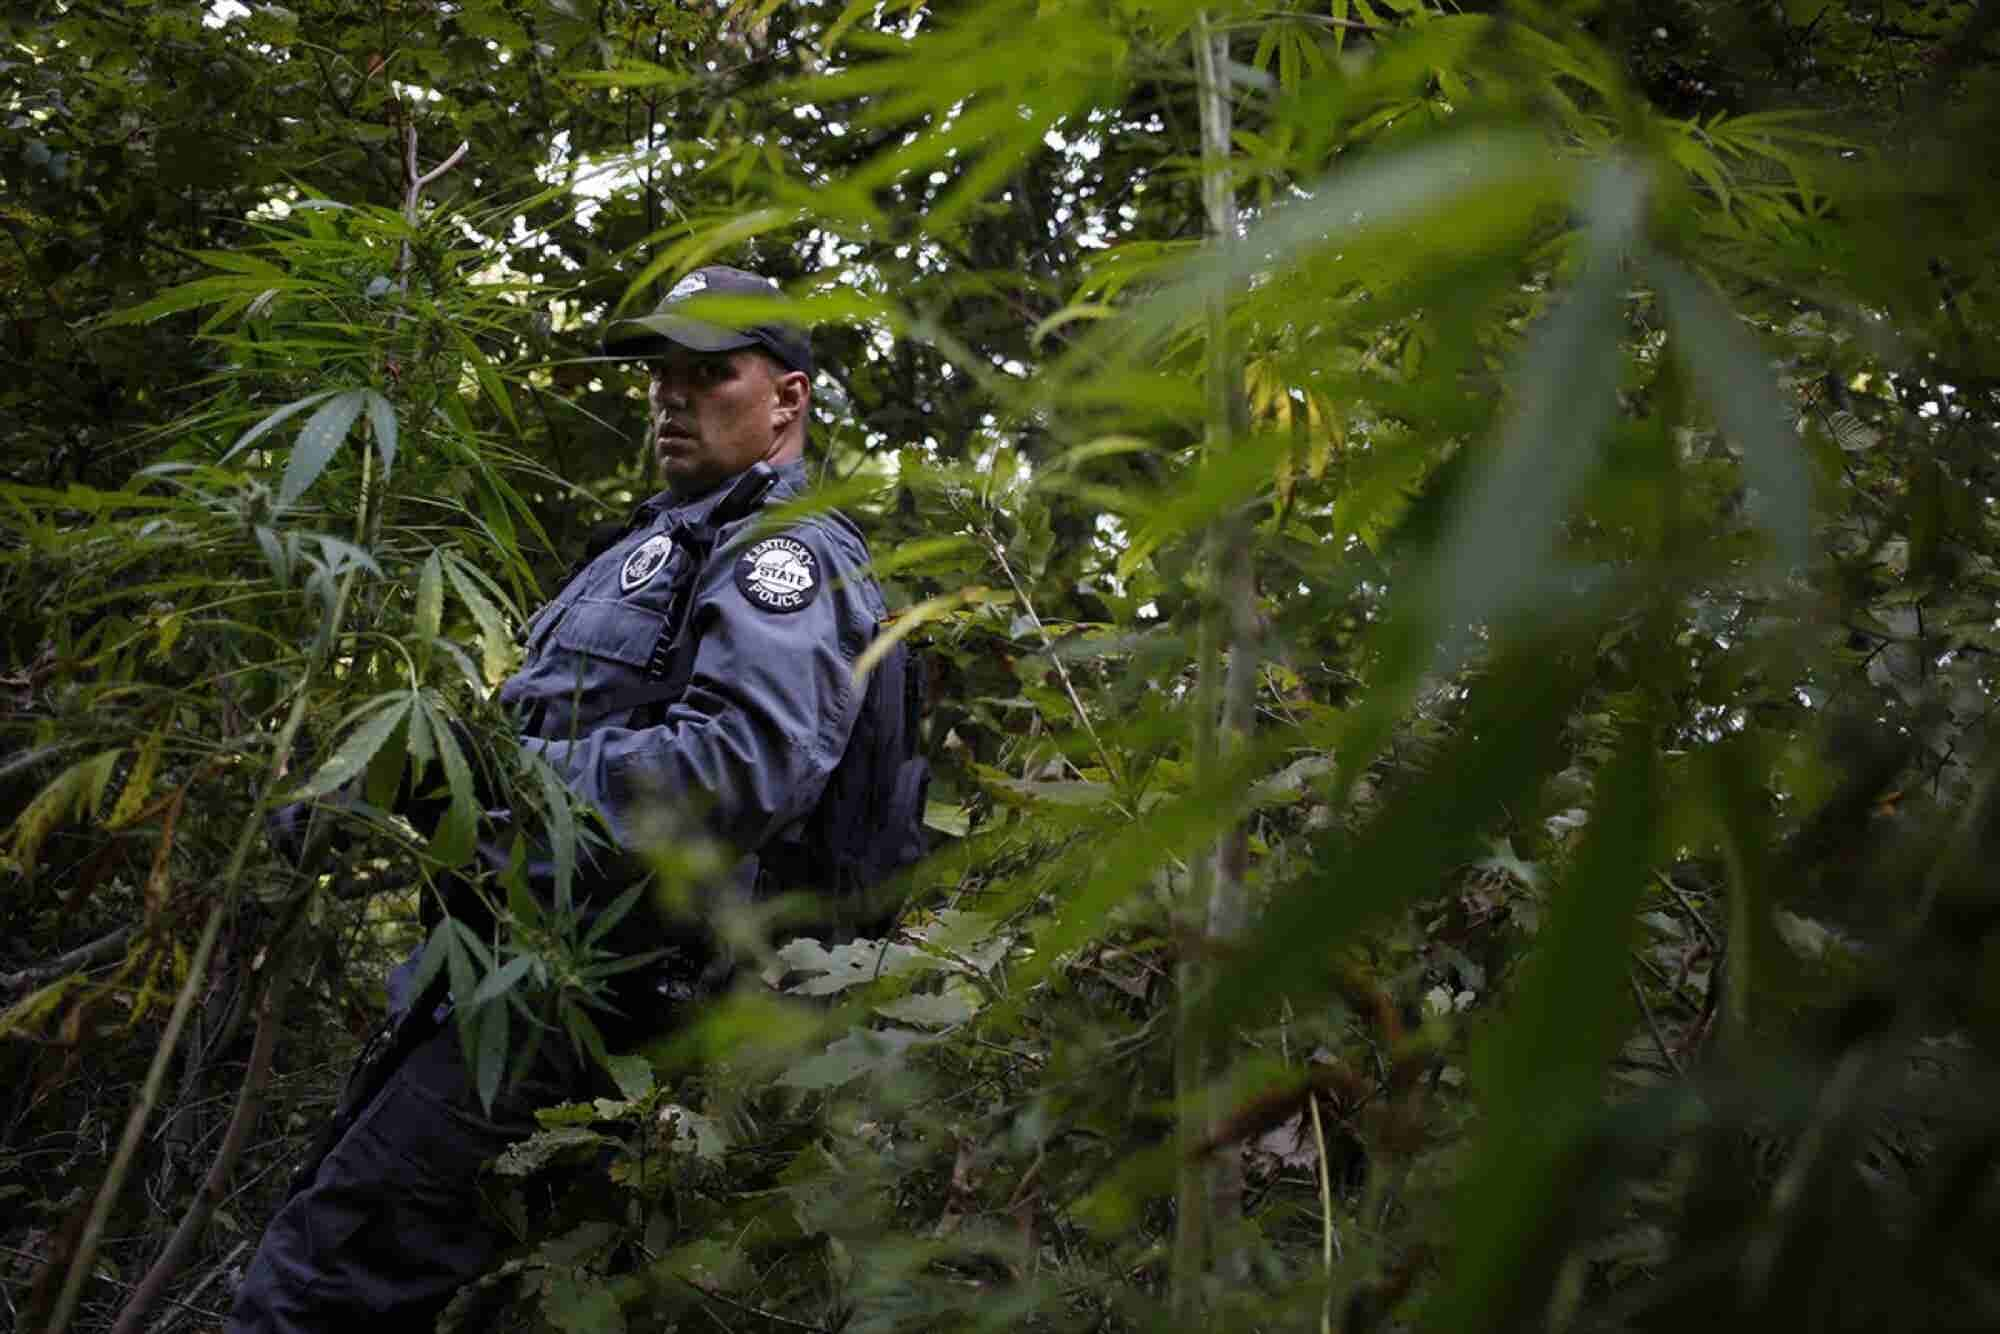 Survey Finds Most Police Officers Support Medical Marijuana